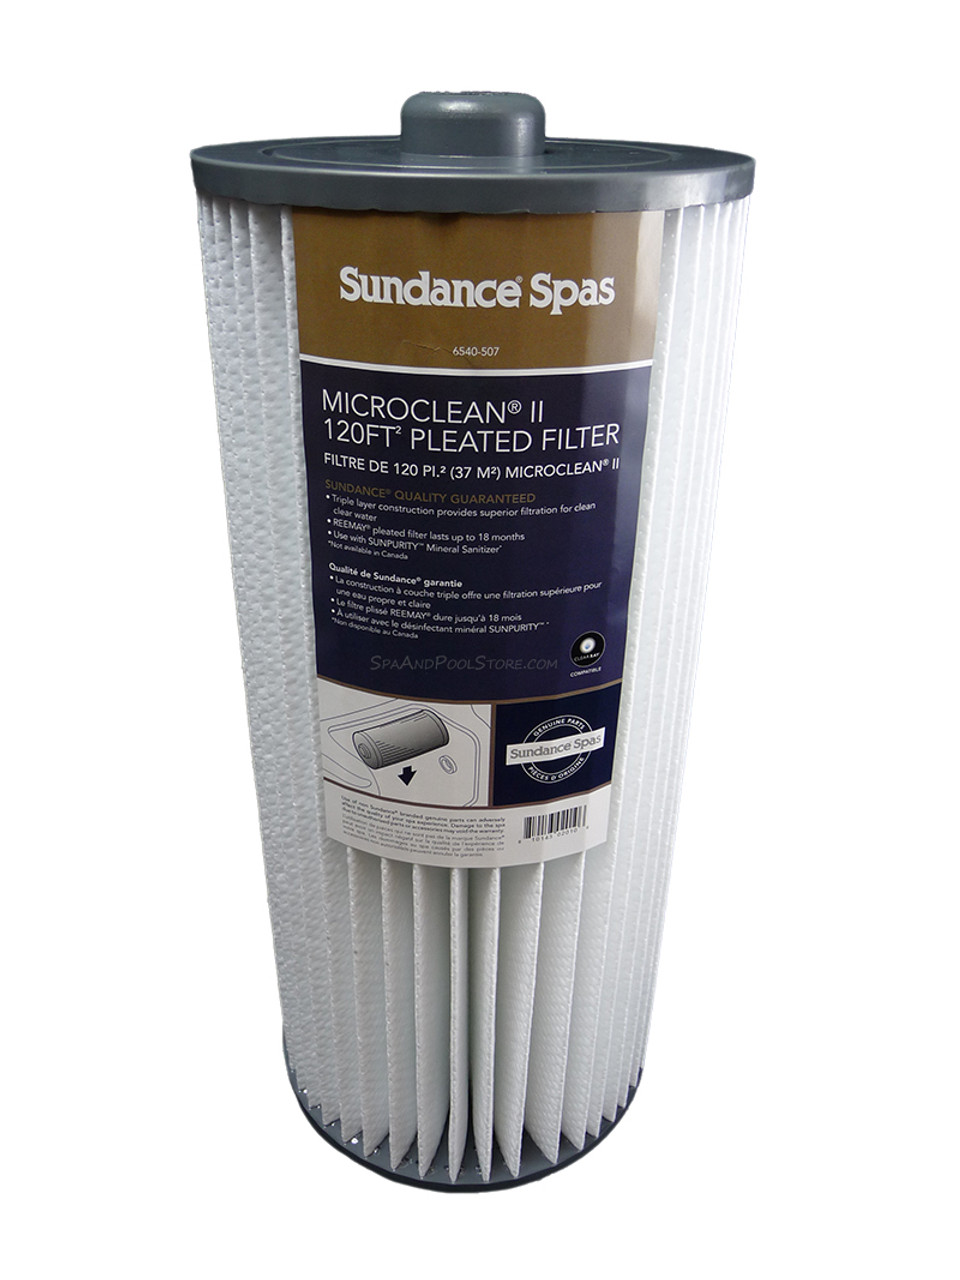 Jacuzzi Pool Filter Parts 6540 507 Sundance Spas Microclean 2 Filter Auto Shipment Save 5 Subscribe Below For Savings Out Of Stock